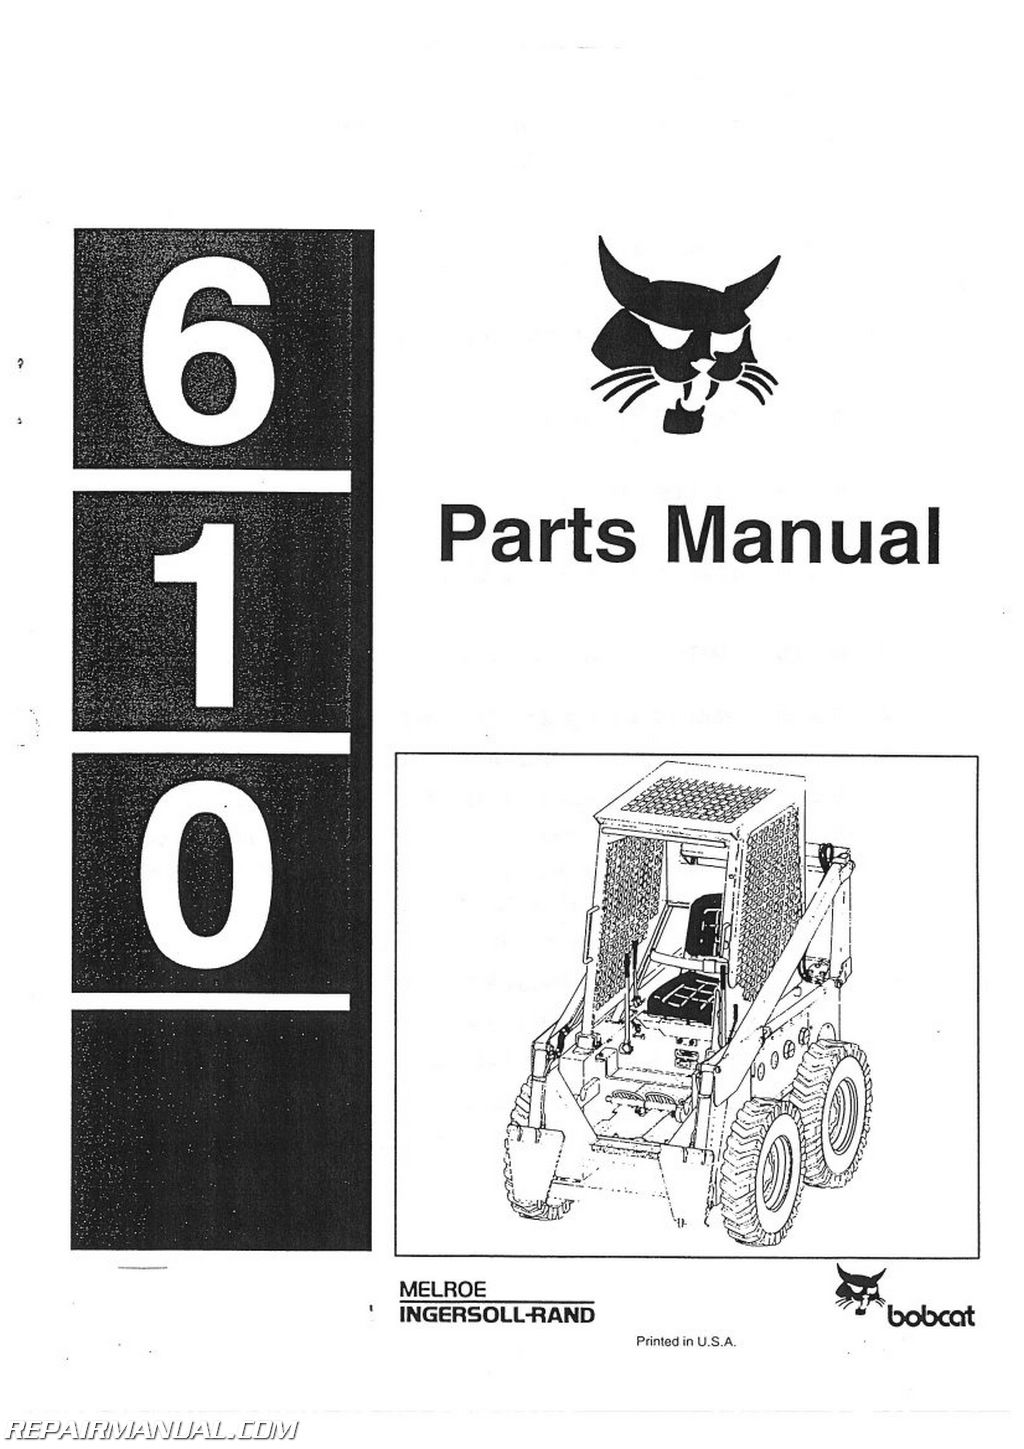 bobcat 610 parts manual rh repairmanual com